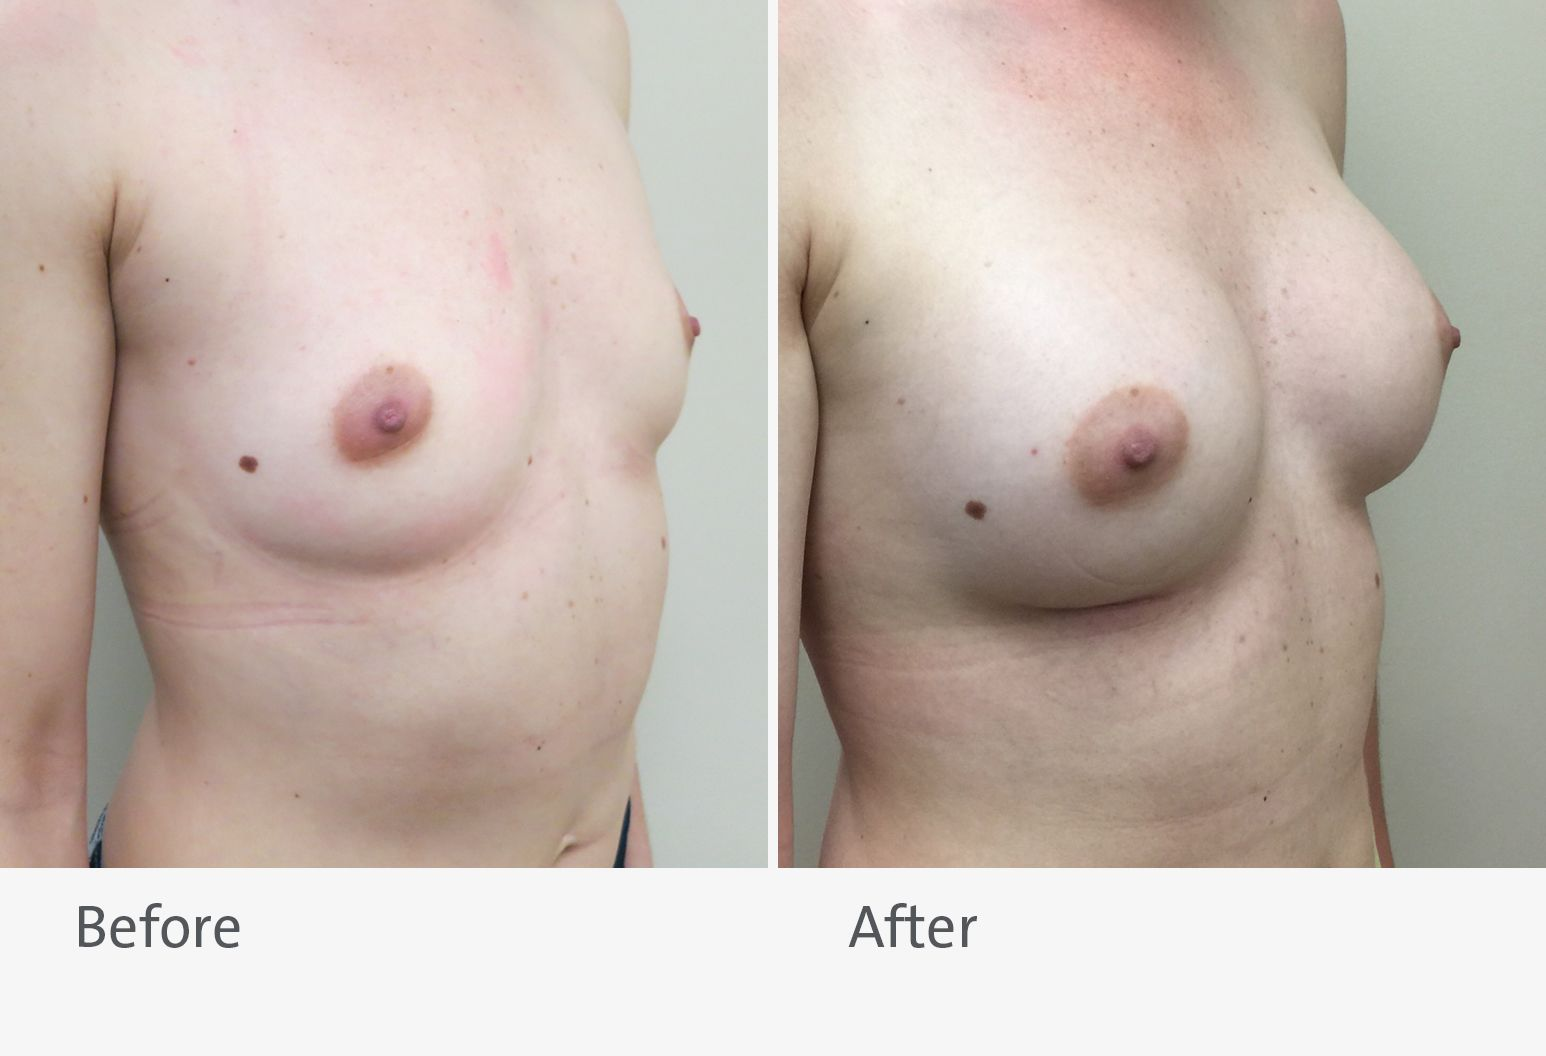 A patient is shown before and after a breast augmentation. On the left is the patient before the surgery and on the right is the patient after surgery with slightly larger breasts.